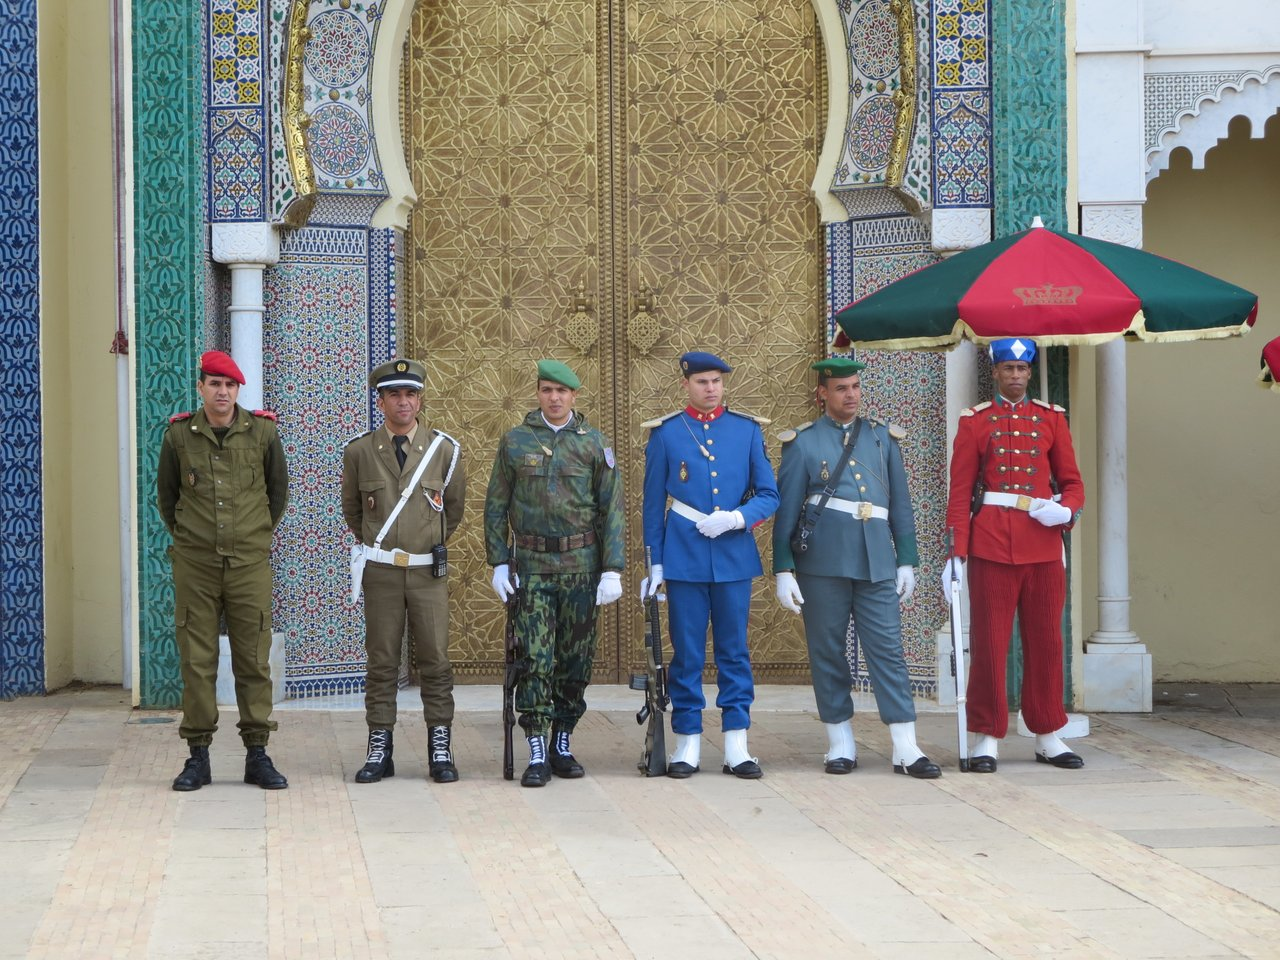 The guards of the Royal Palace | Photo taken by Eileen S